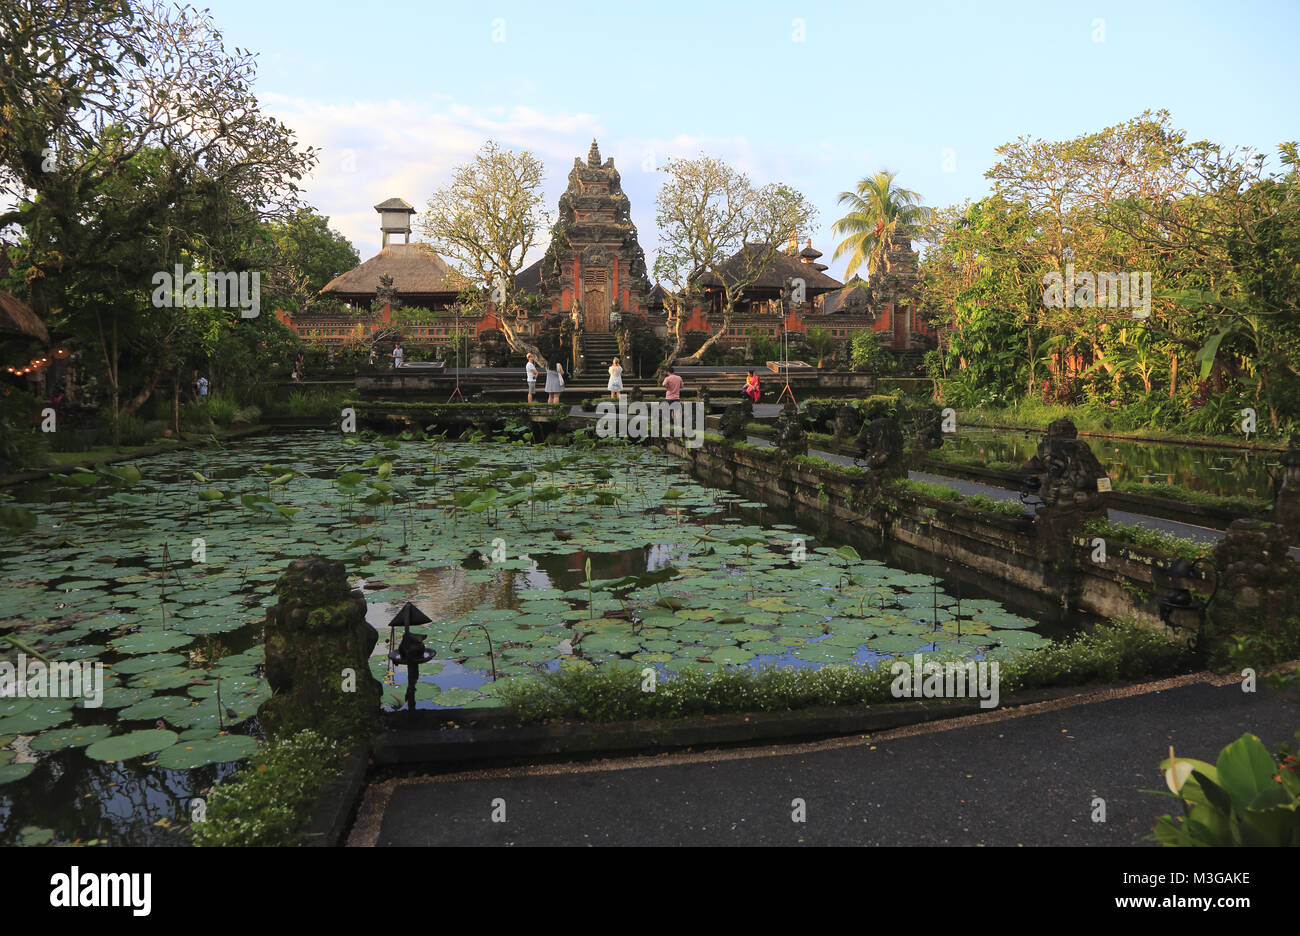 Pura Taman Saraswati Temple with lotus pond in foreground.Ubud.Bali.Indonesia - Stock Image